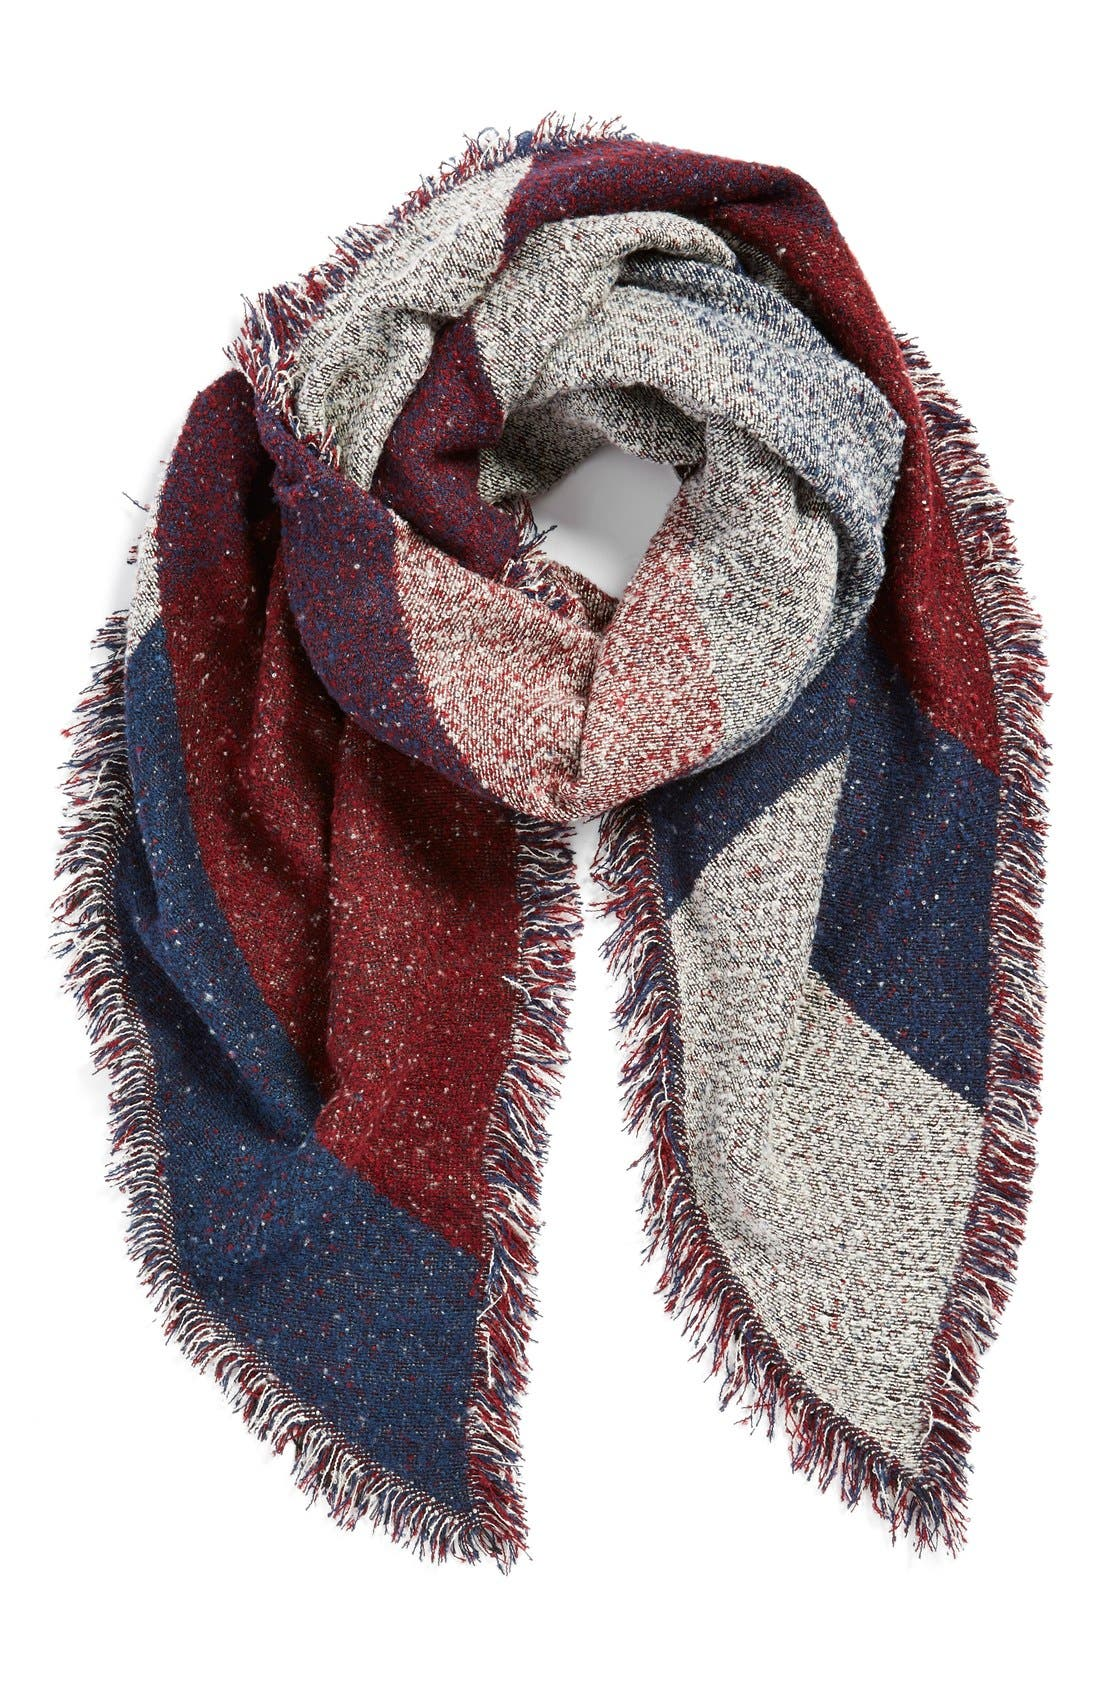 Alternate Image 1 Selected - BP. Marled Colorblock Oblong Scarf